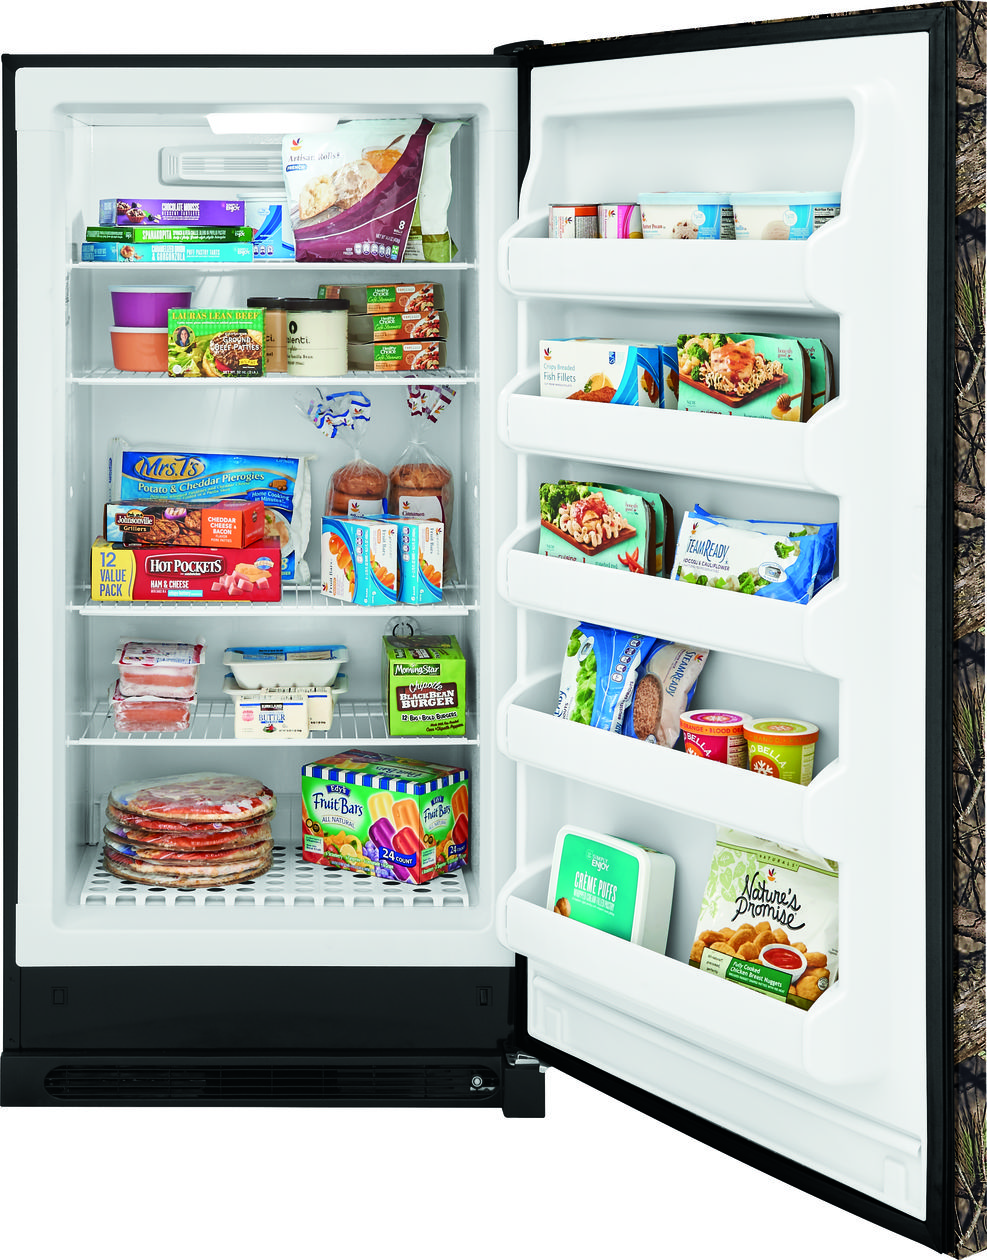 16.6 Cu. Ft. Camouflage 2-in-1 Upright Freezer or Refrigerator